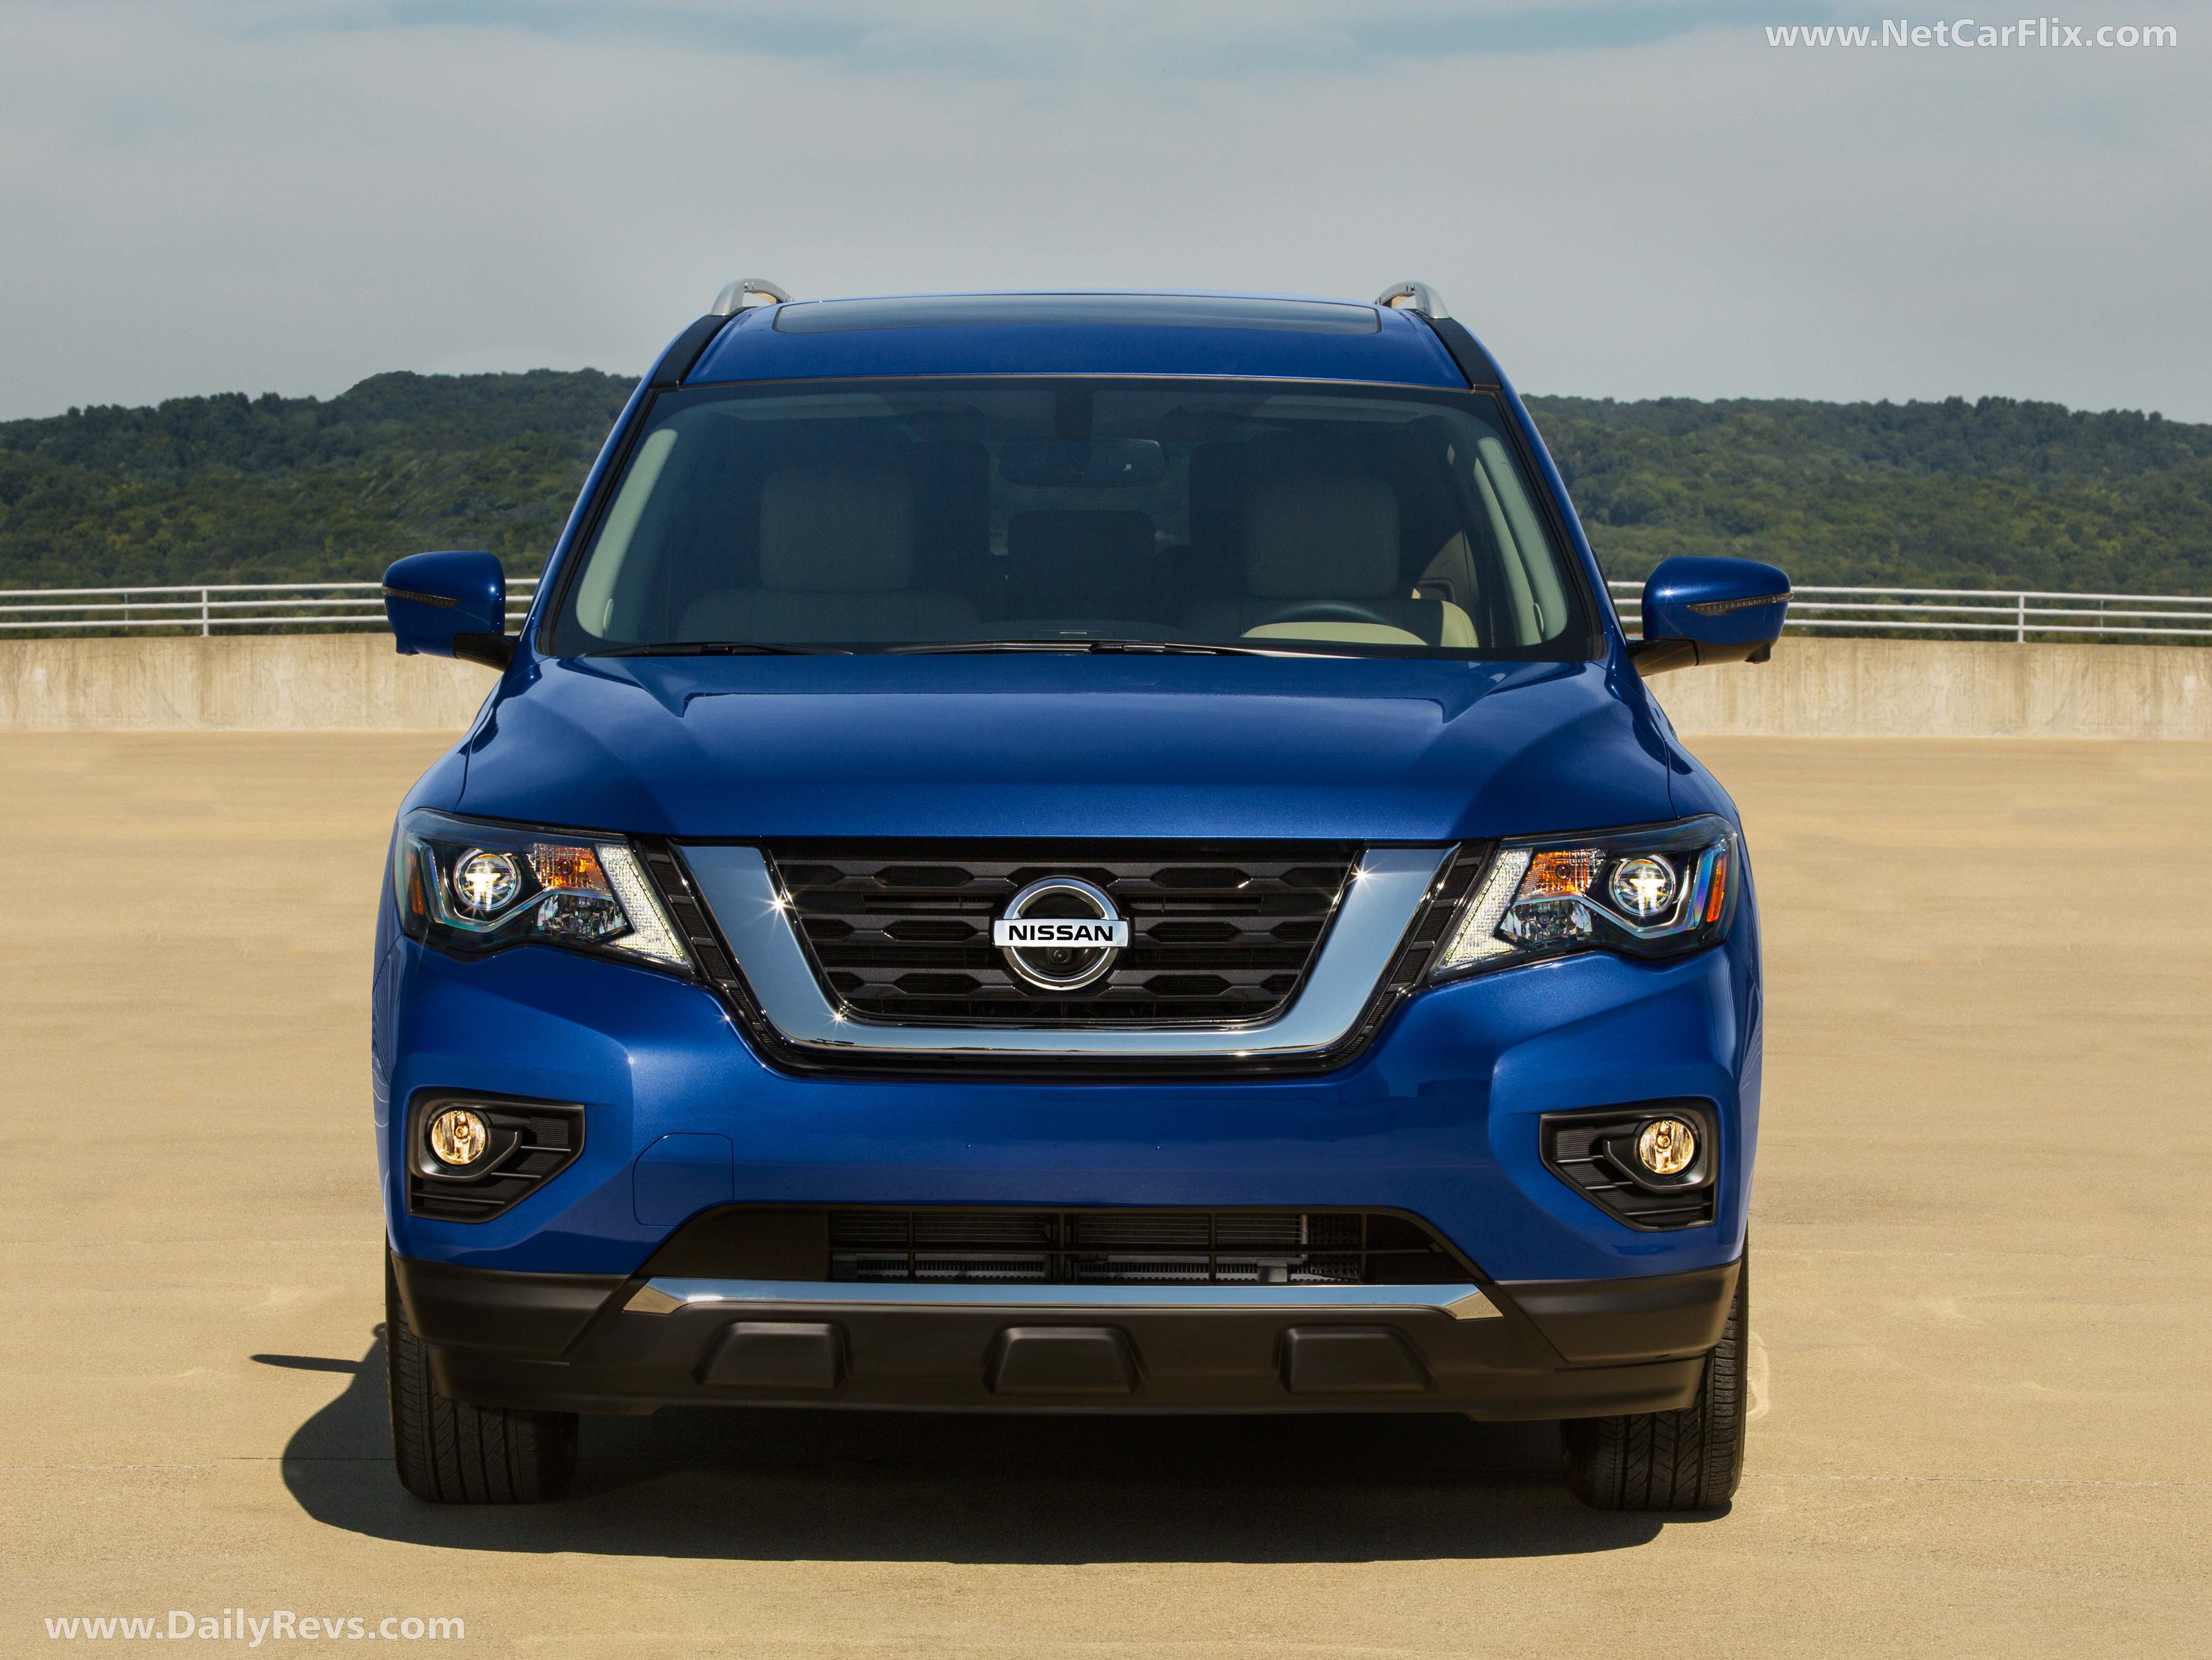 2020 Nissan Pathfinder - HQ Pictures, Specs, information ...